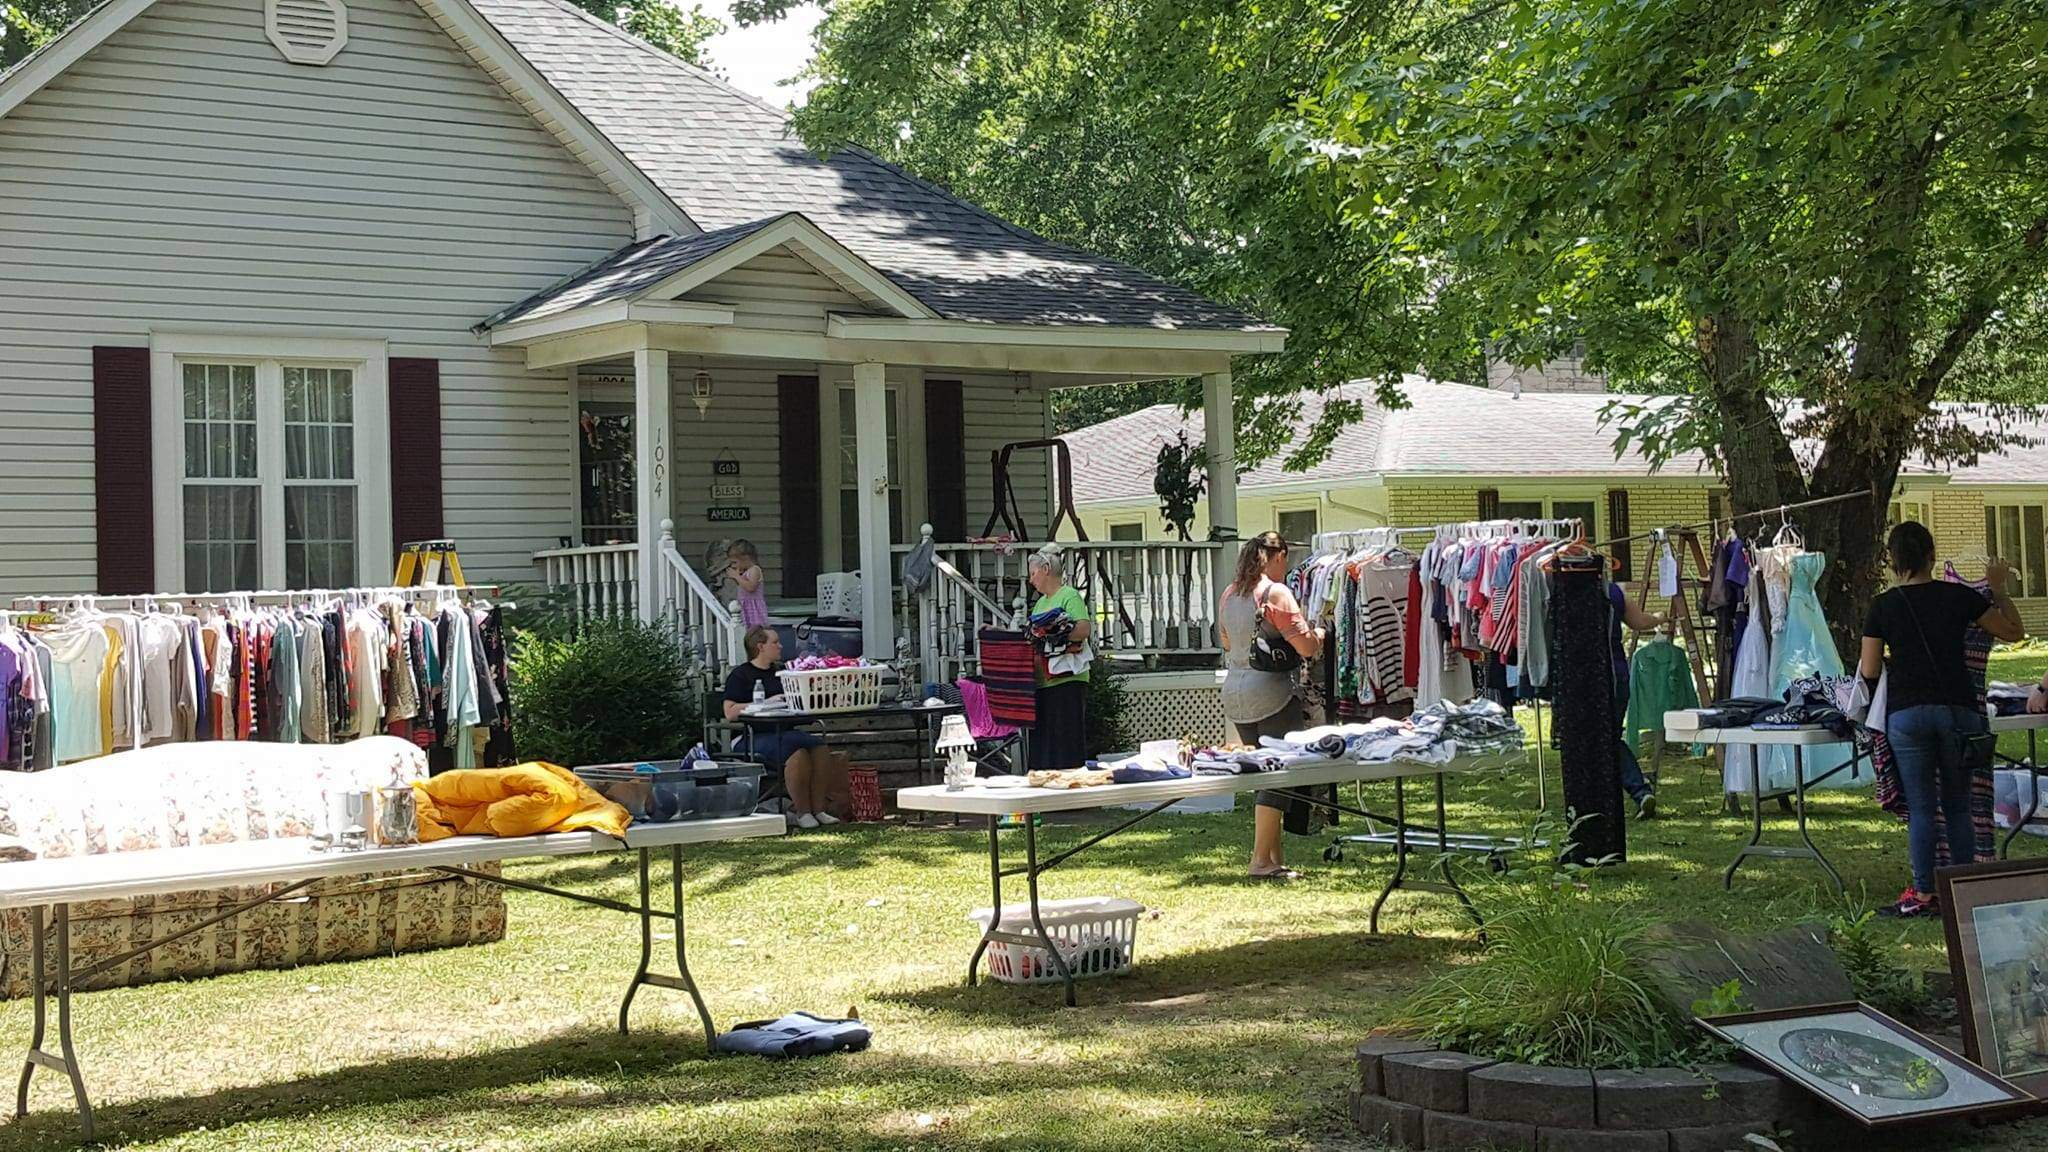 Vicky Hammonds was one of more than 50 Benton residents to participate in the city-wide yard sale last Saturday. 'We would have liked to get rid of everything,' Hammonds said, laughing, but she added that 'business' had been good.